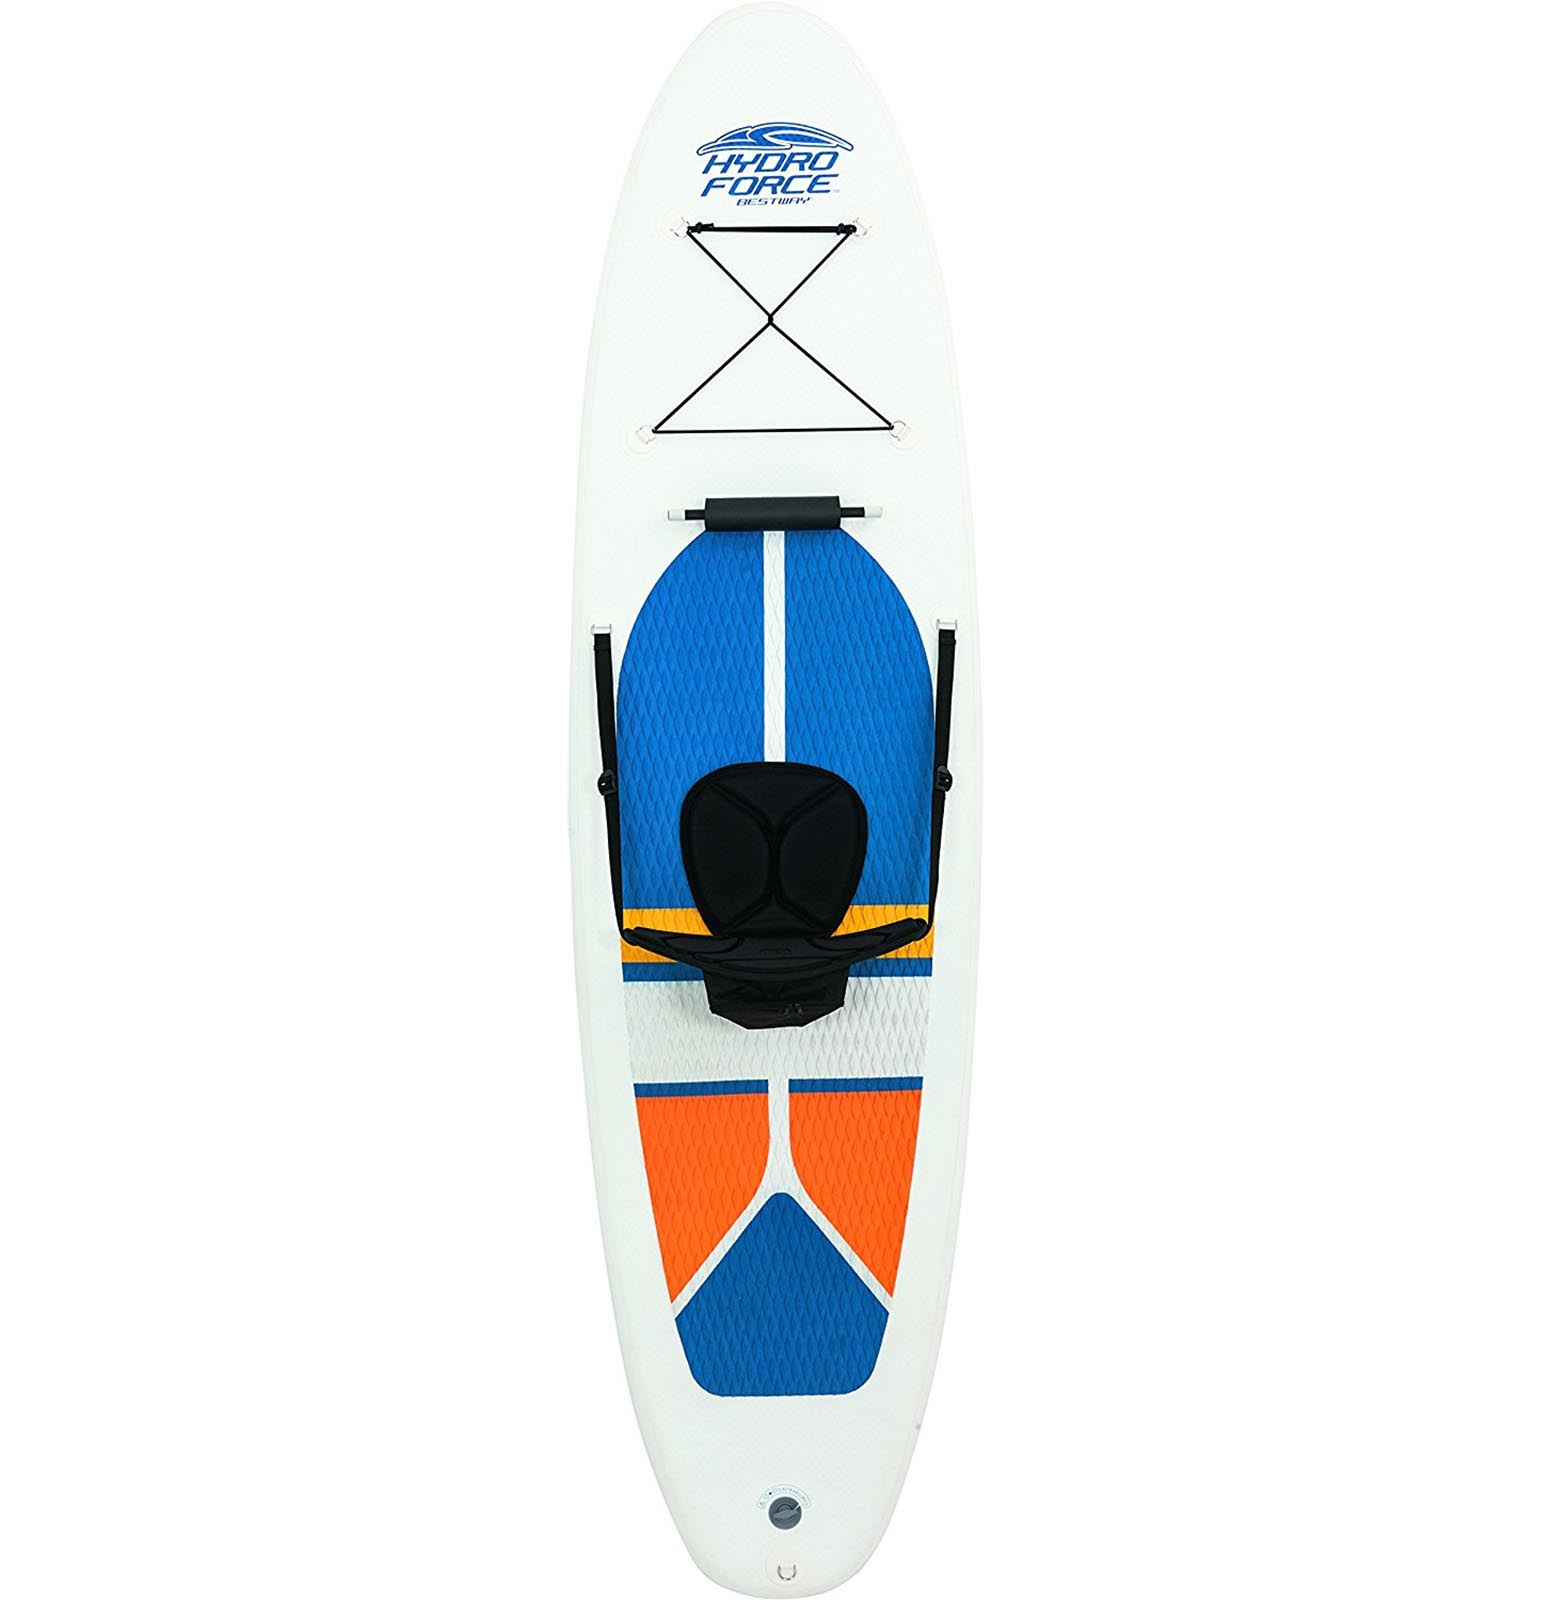 Bestway Hydro-Force White Cap Inflatable SUP Stand Up Paddle Board & Kayak  65069 - Walmart.com